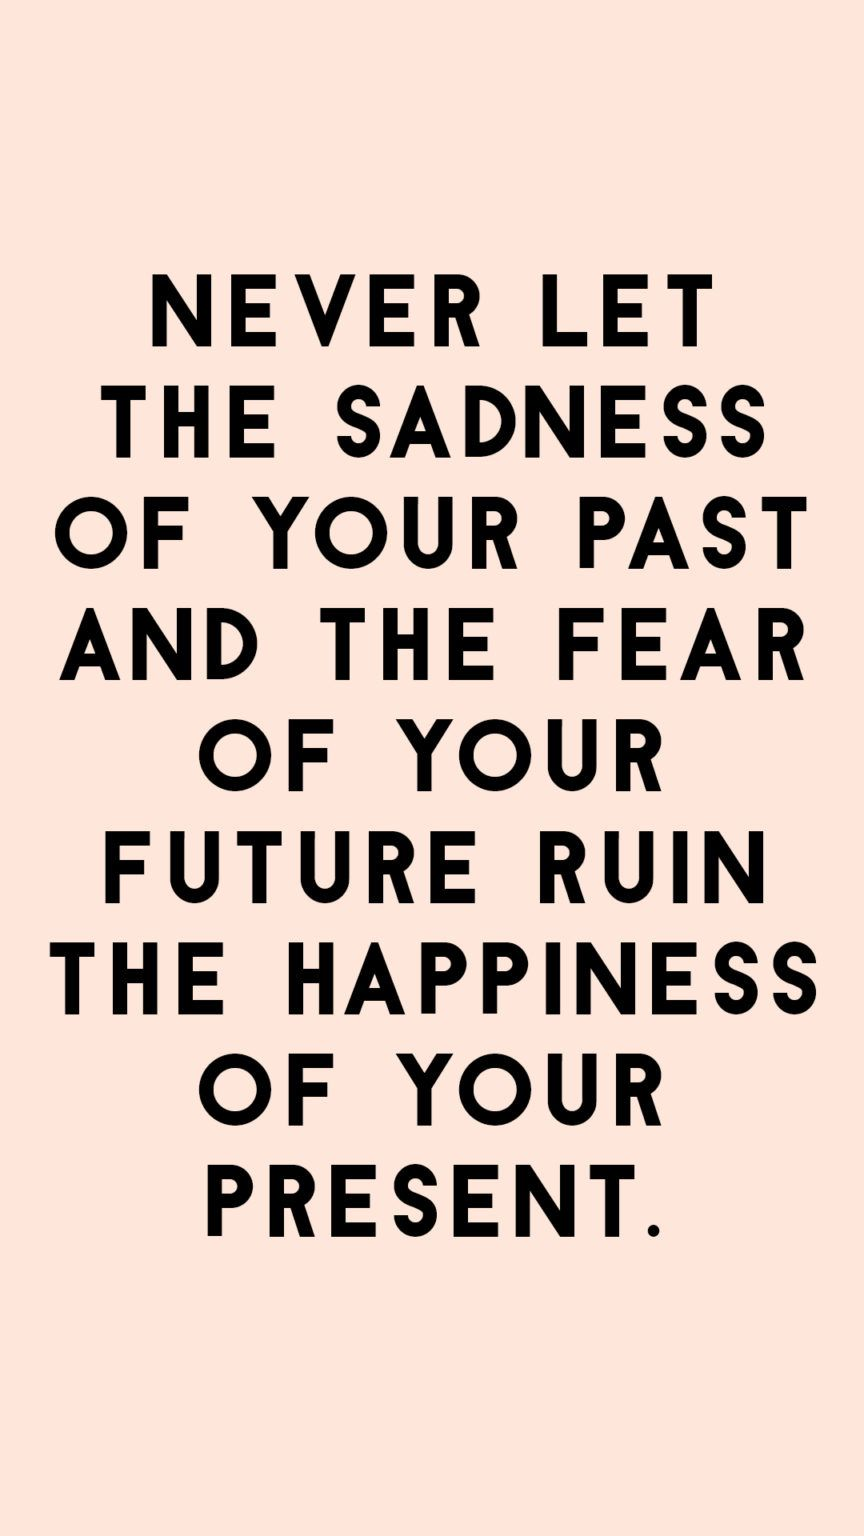 phone wallpaper, phone backgrounds, quotes, free phone wallpapers,